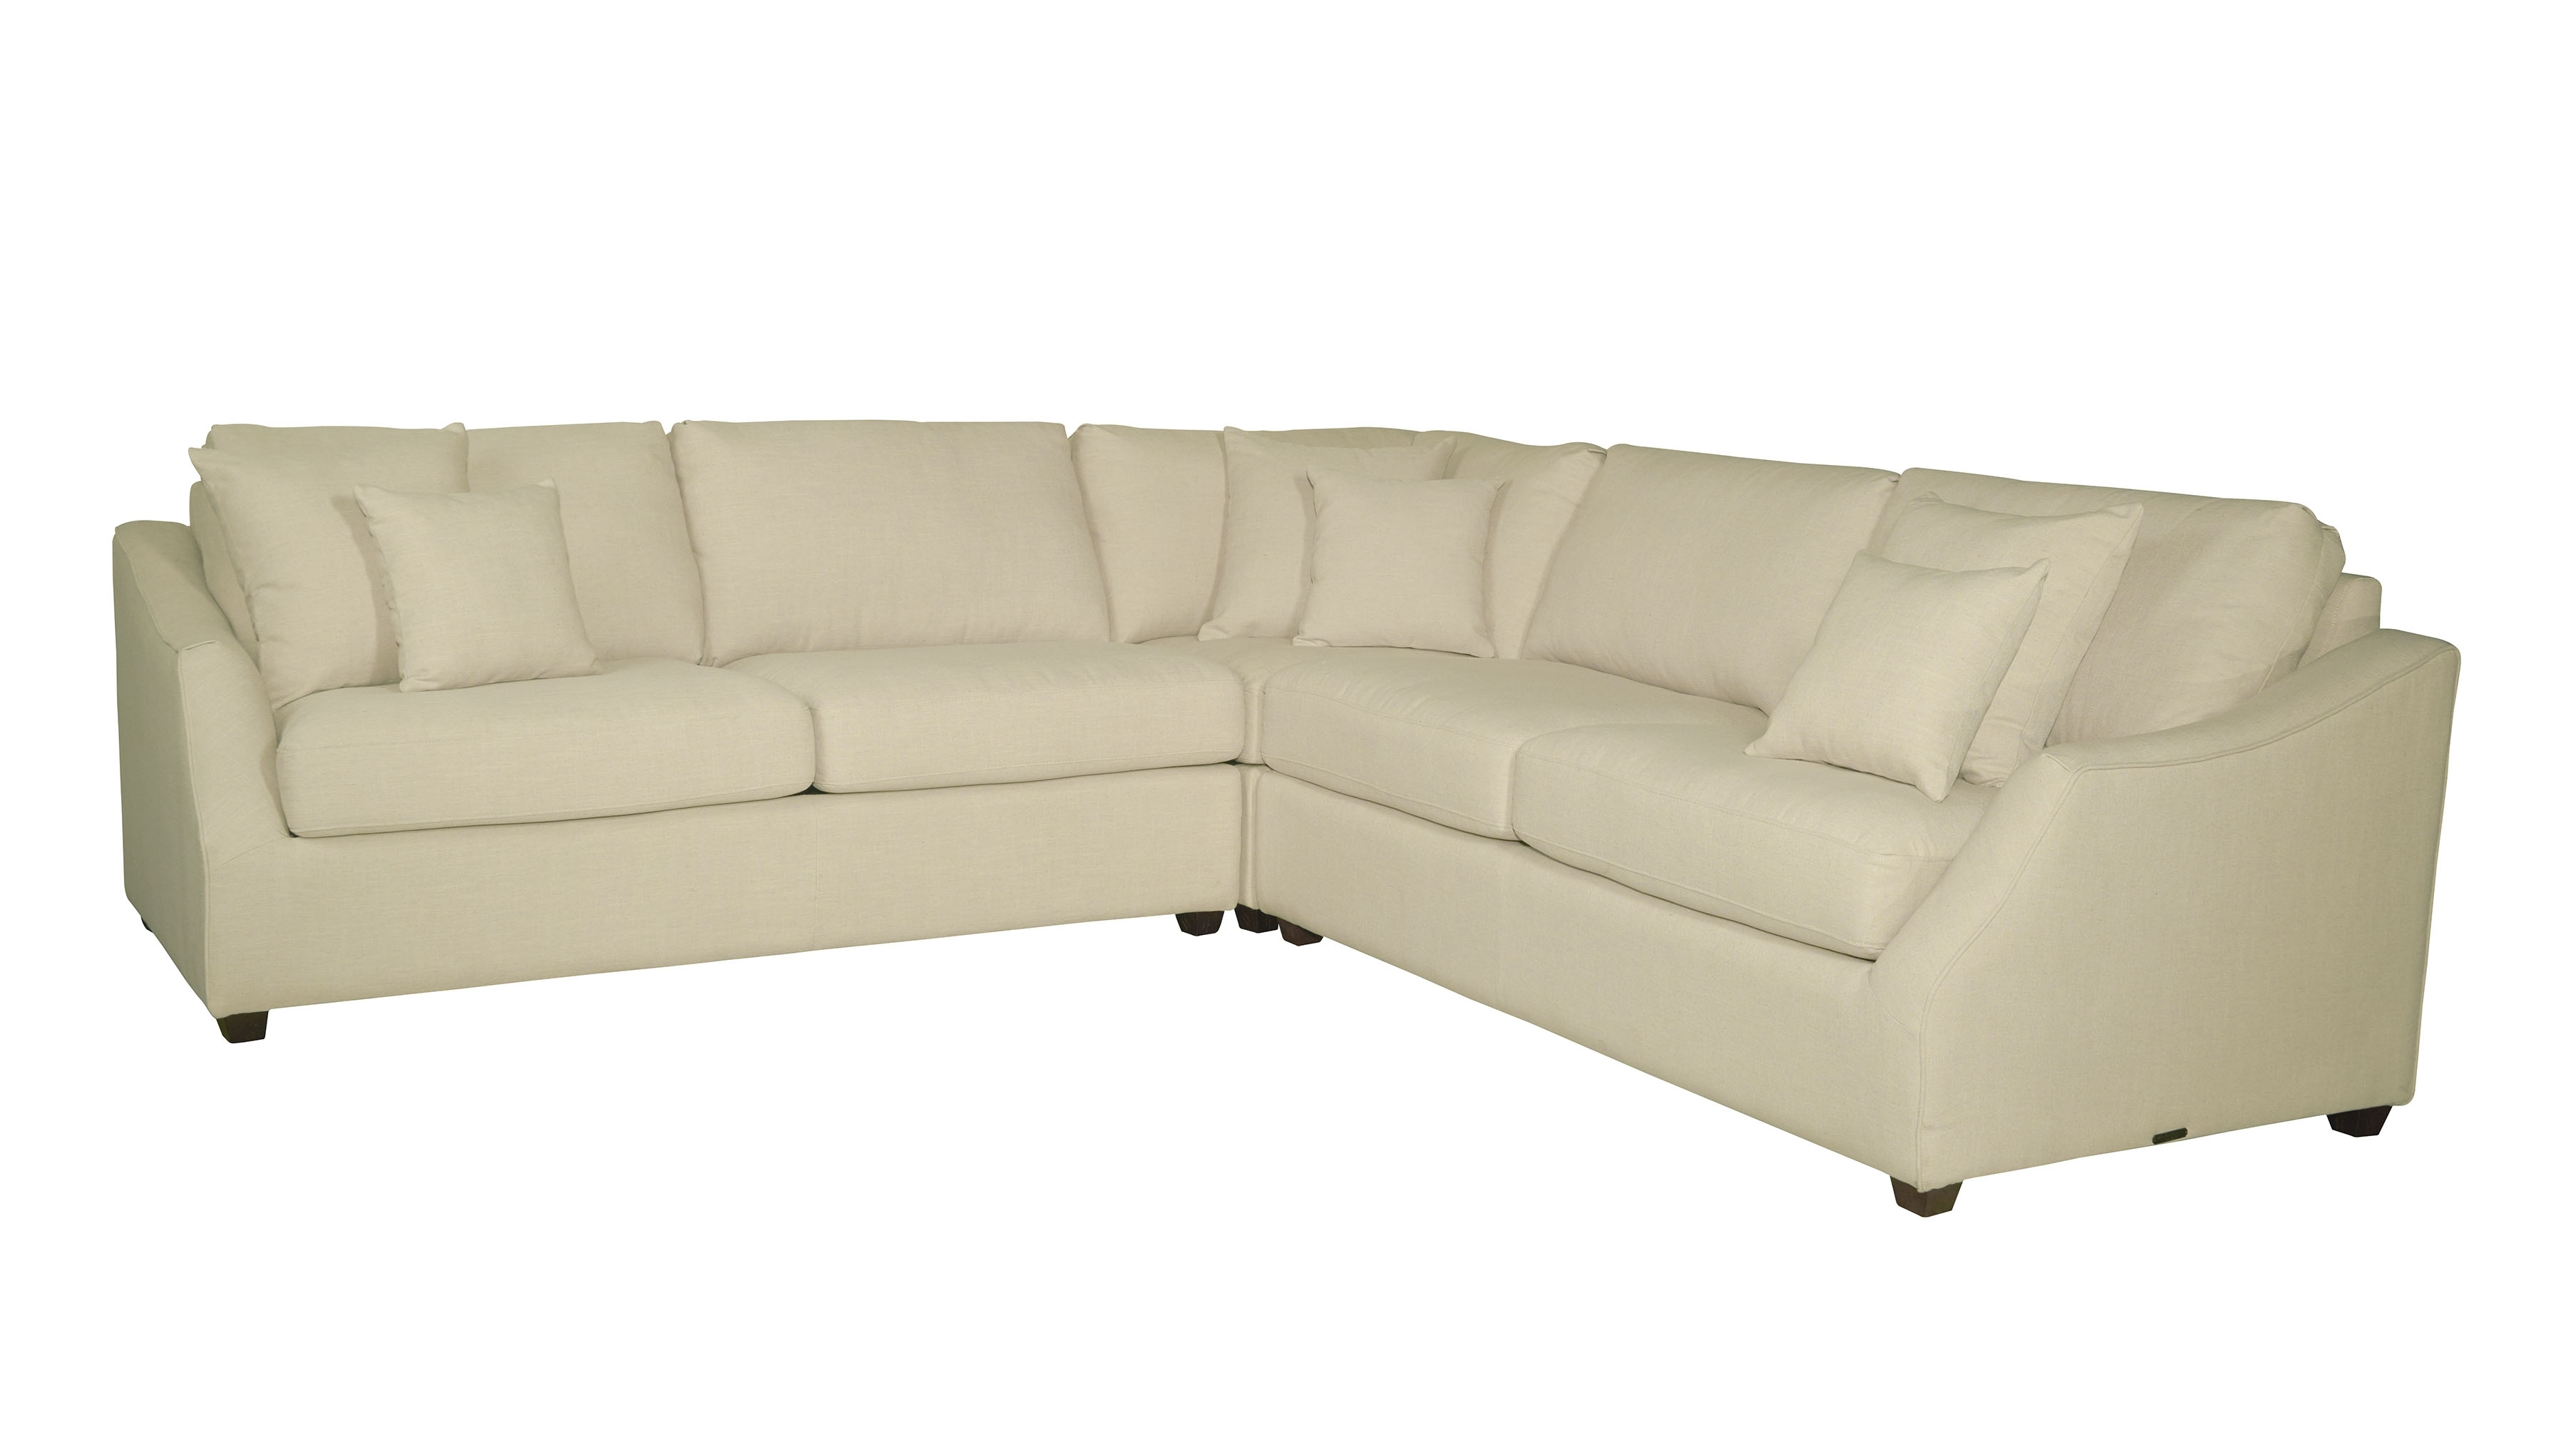 Homestead Sectional – Magnolia Home Throughout Magnolia Home Homestead 4 Piece Sectionals By Joanna Gaines (Image 8 of 25)